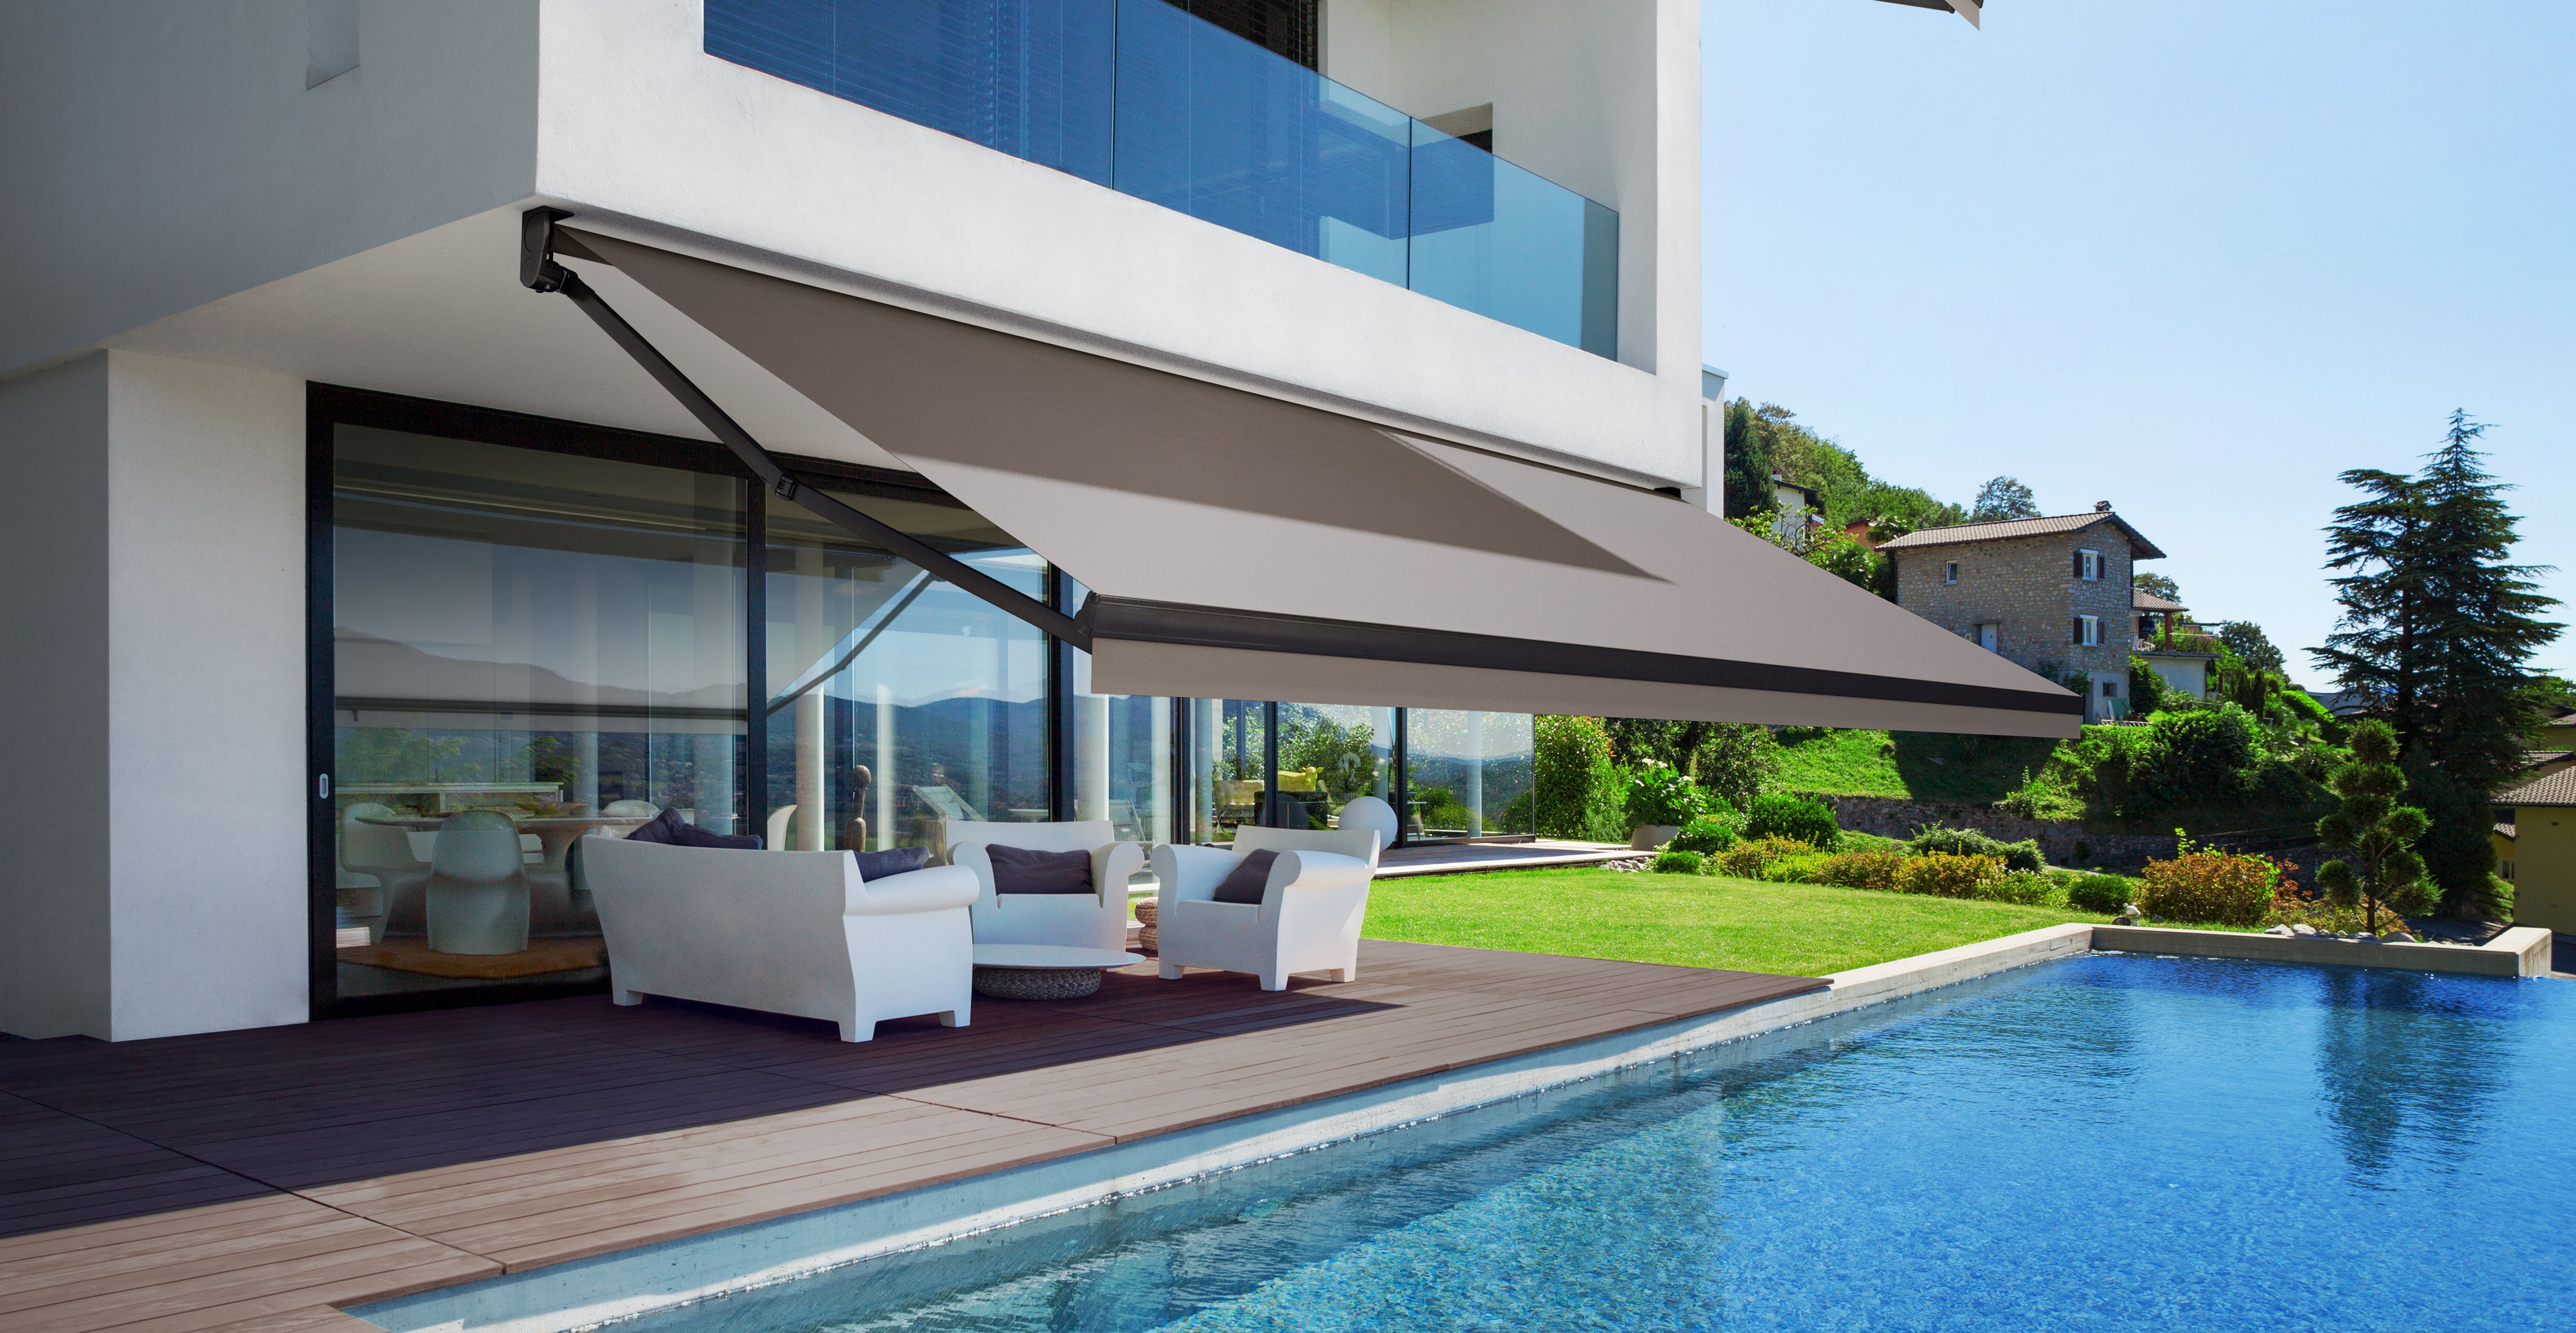 Retractable Awnings and Canopies | Manual and Motorized ...